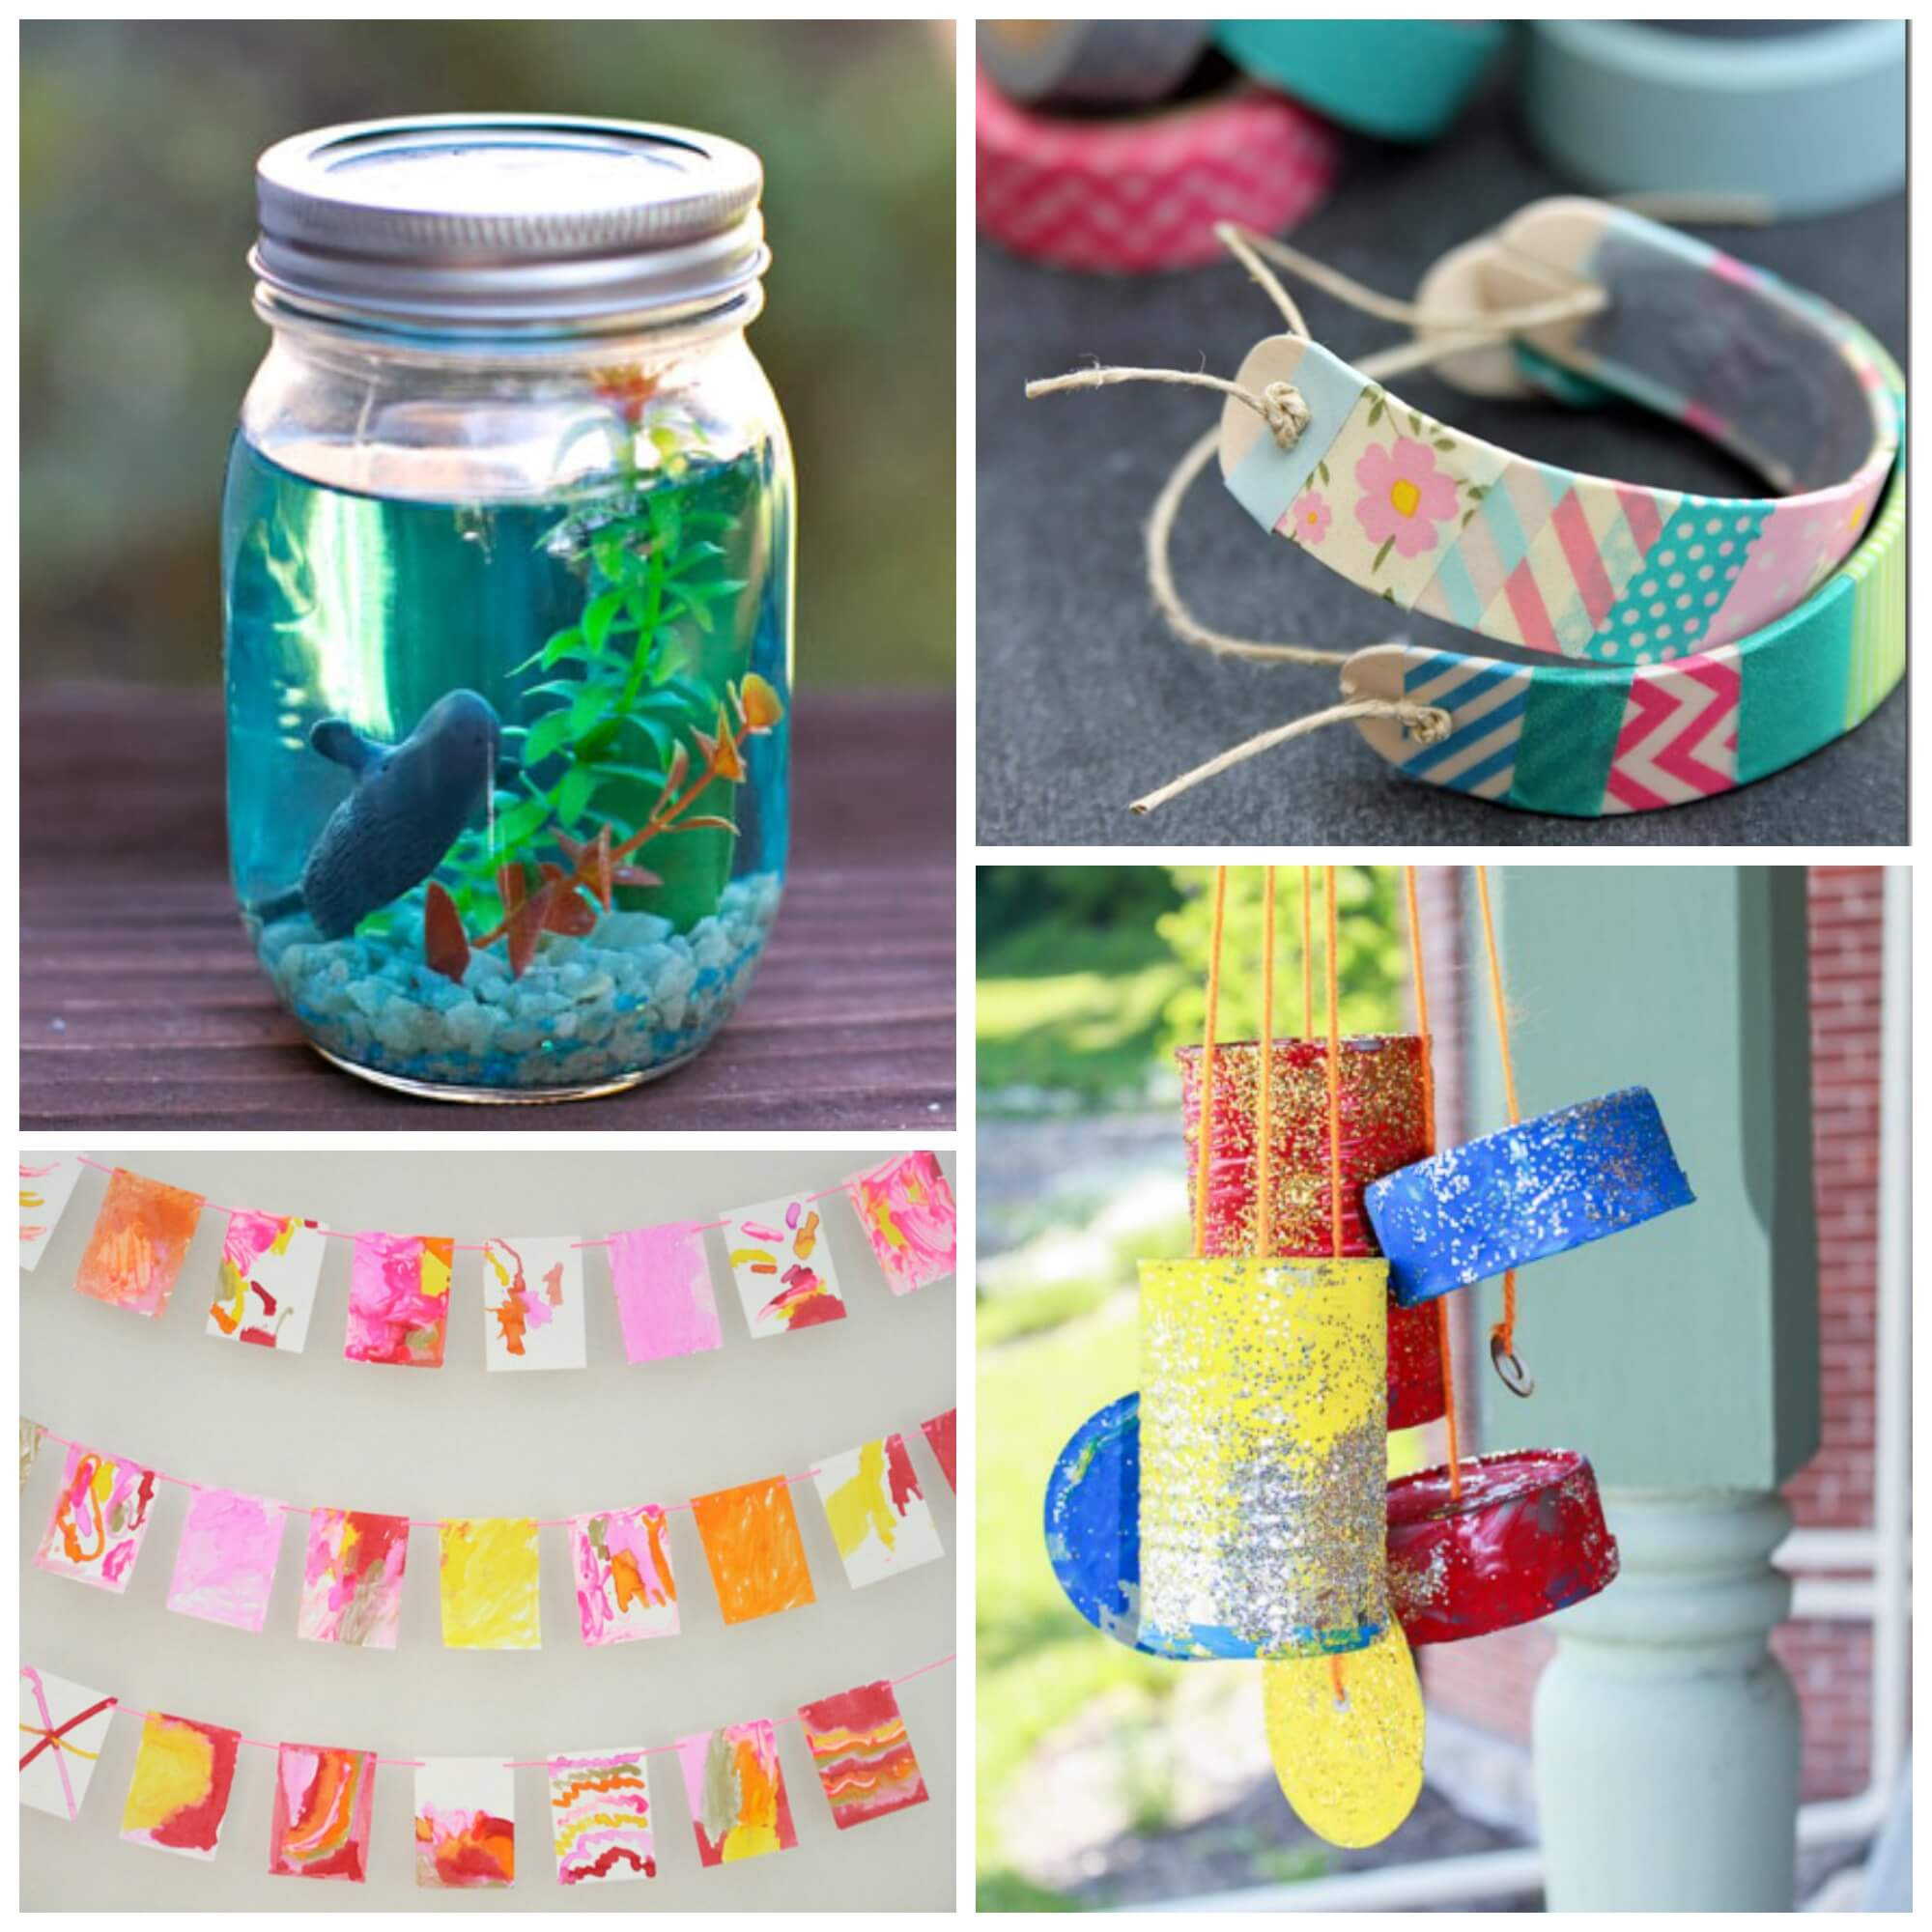 Best ideas about Cool Arts And Crafts For Kids . Save or Pin 15 Arts and Crafts for Kids Playdough To Plato Now.